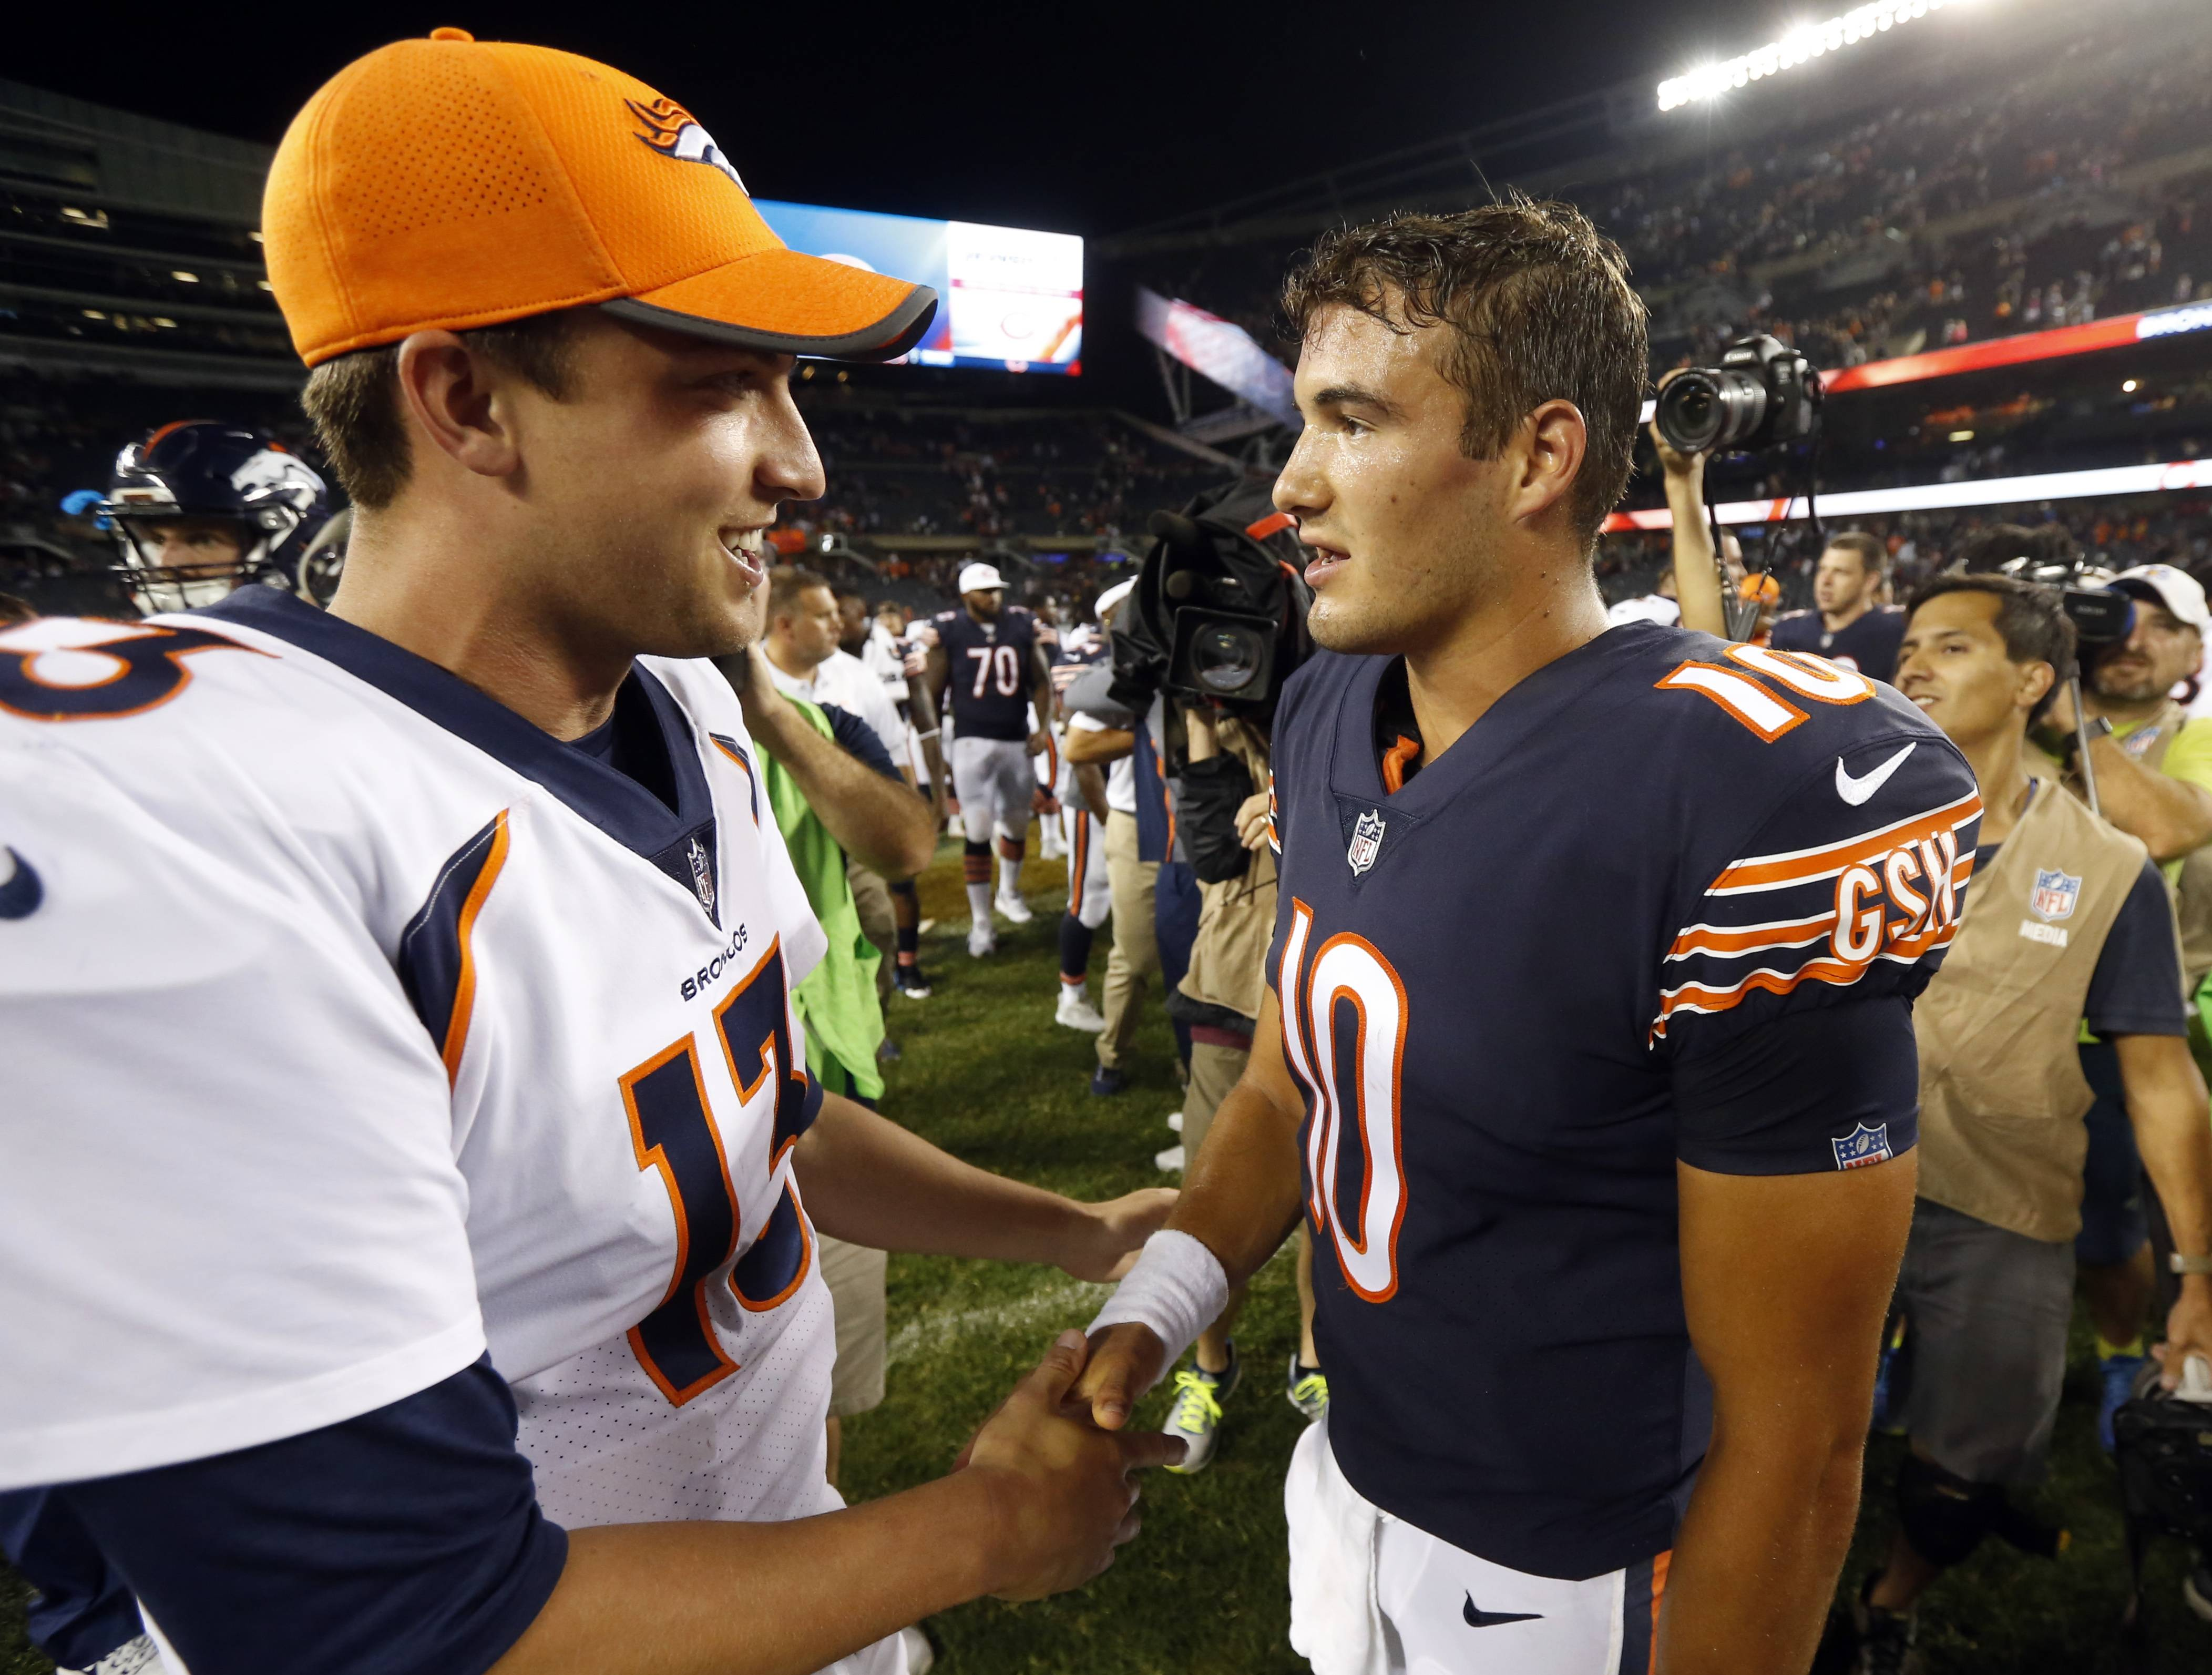 Denver Broncos quarterback Trevor Siemian (13) shakes hands with Chicago Bears quarterback Mitchell Trubisky (10) after an NFL preseason football game, Thursday, Aug. 10, 2017, in Chicago. The Broncos won 24-17. (AP Photo/Charles Rex Arbogast)